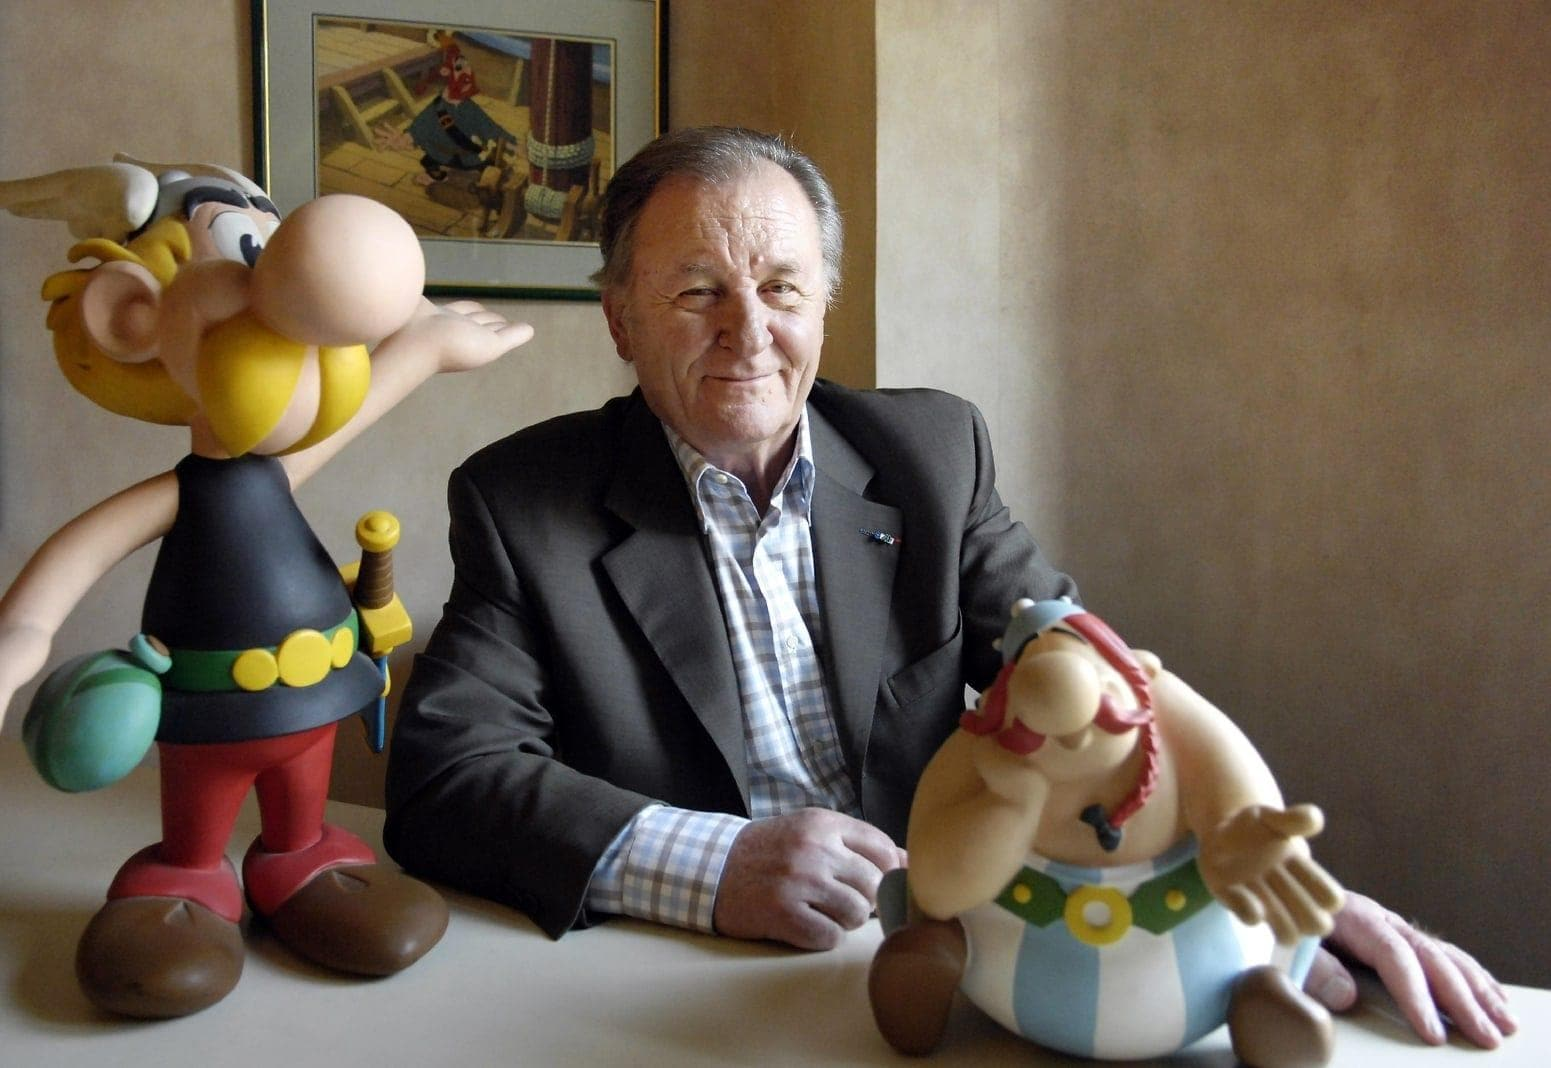 Illustrator Albert Uderzo